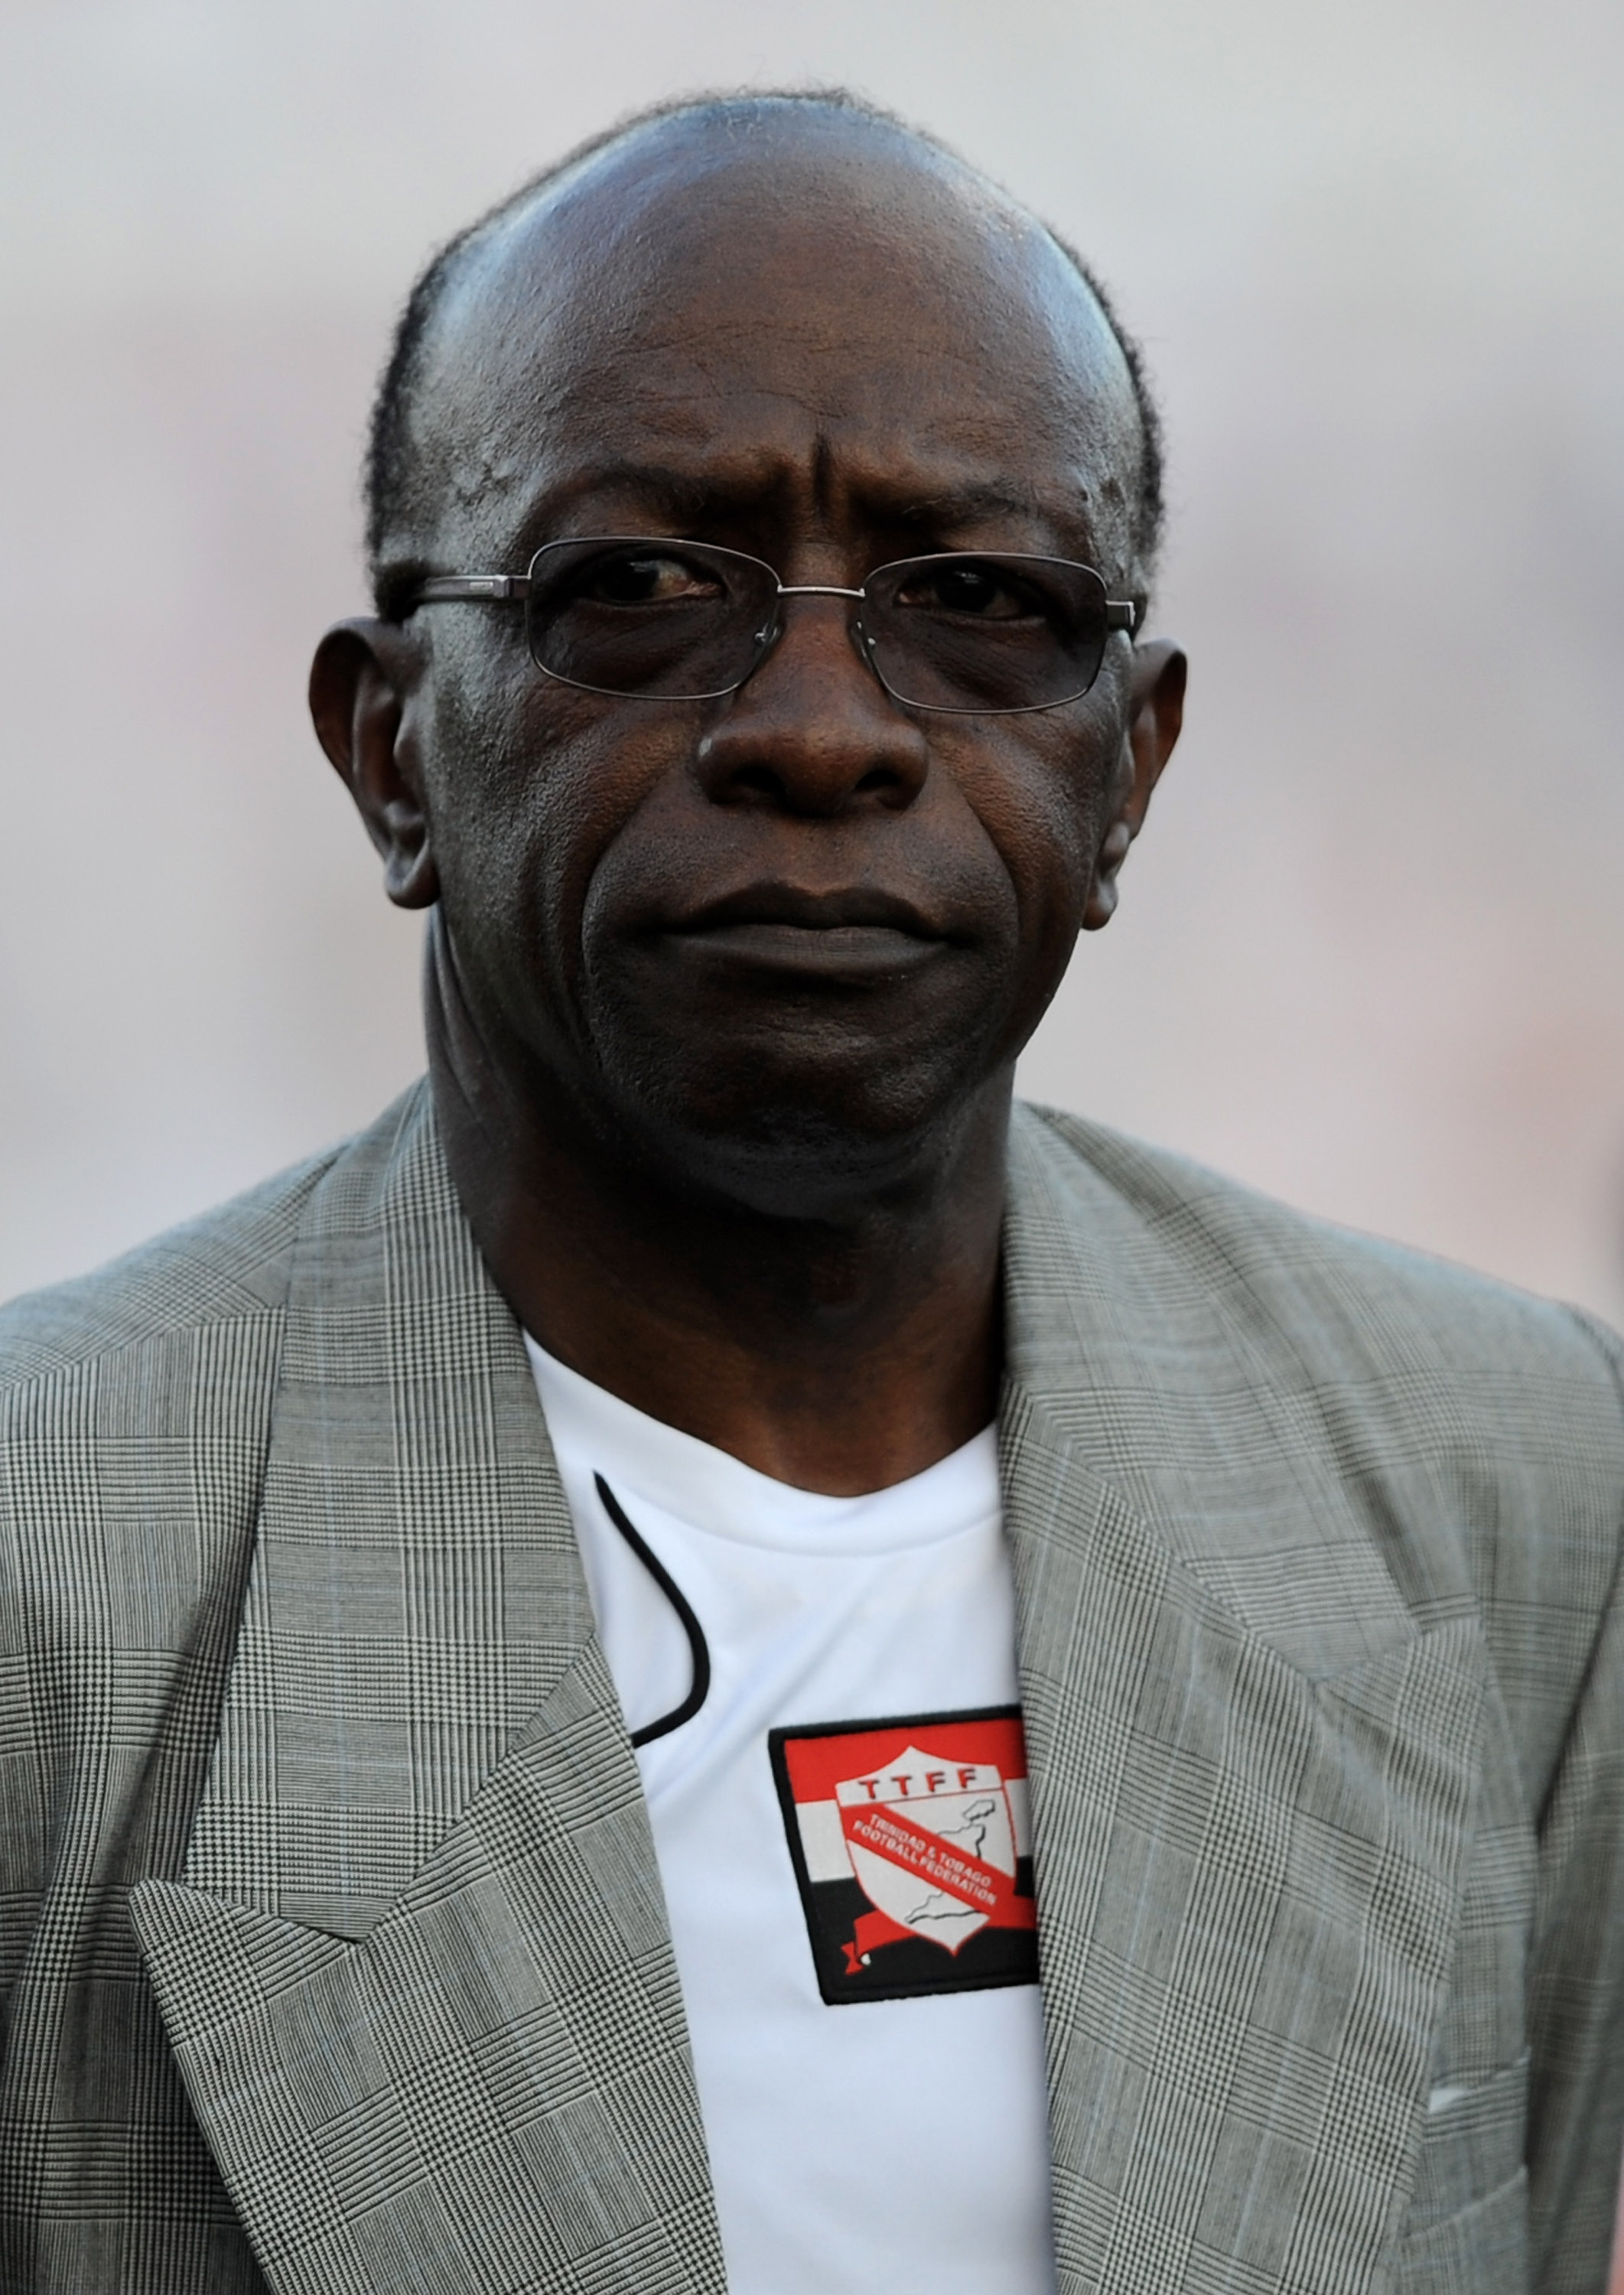 PORT-OF-SPAIN, TRINIDAD AND TOBAGO - JUNE 01:  Jack Warner, the CONCACAF president and vice president of FIFA is seen before the international friendly between Trinidad & Tobago and England at the Hasely Crawford Stadium on June 1, 2008 in Port of Spain,